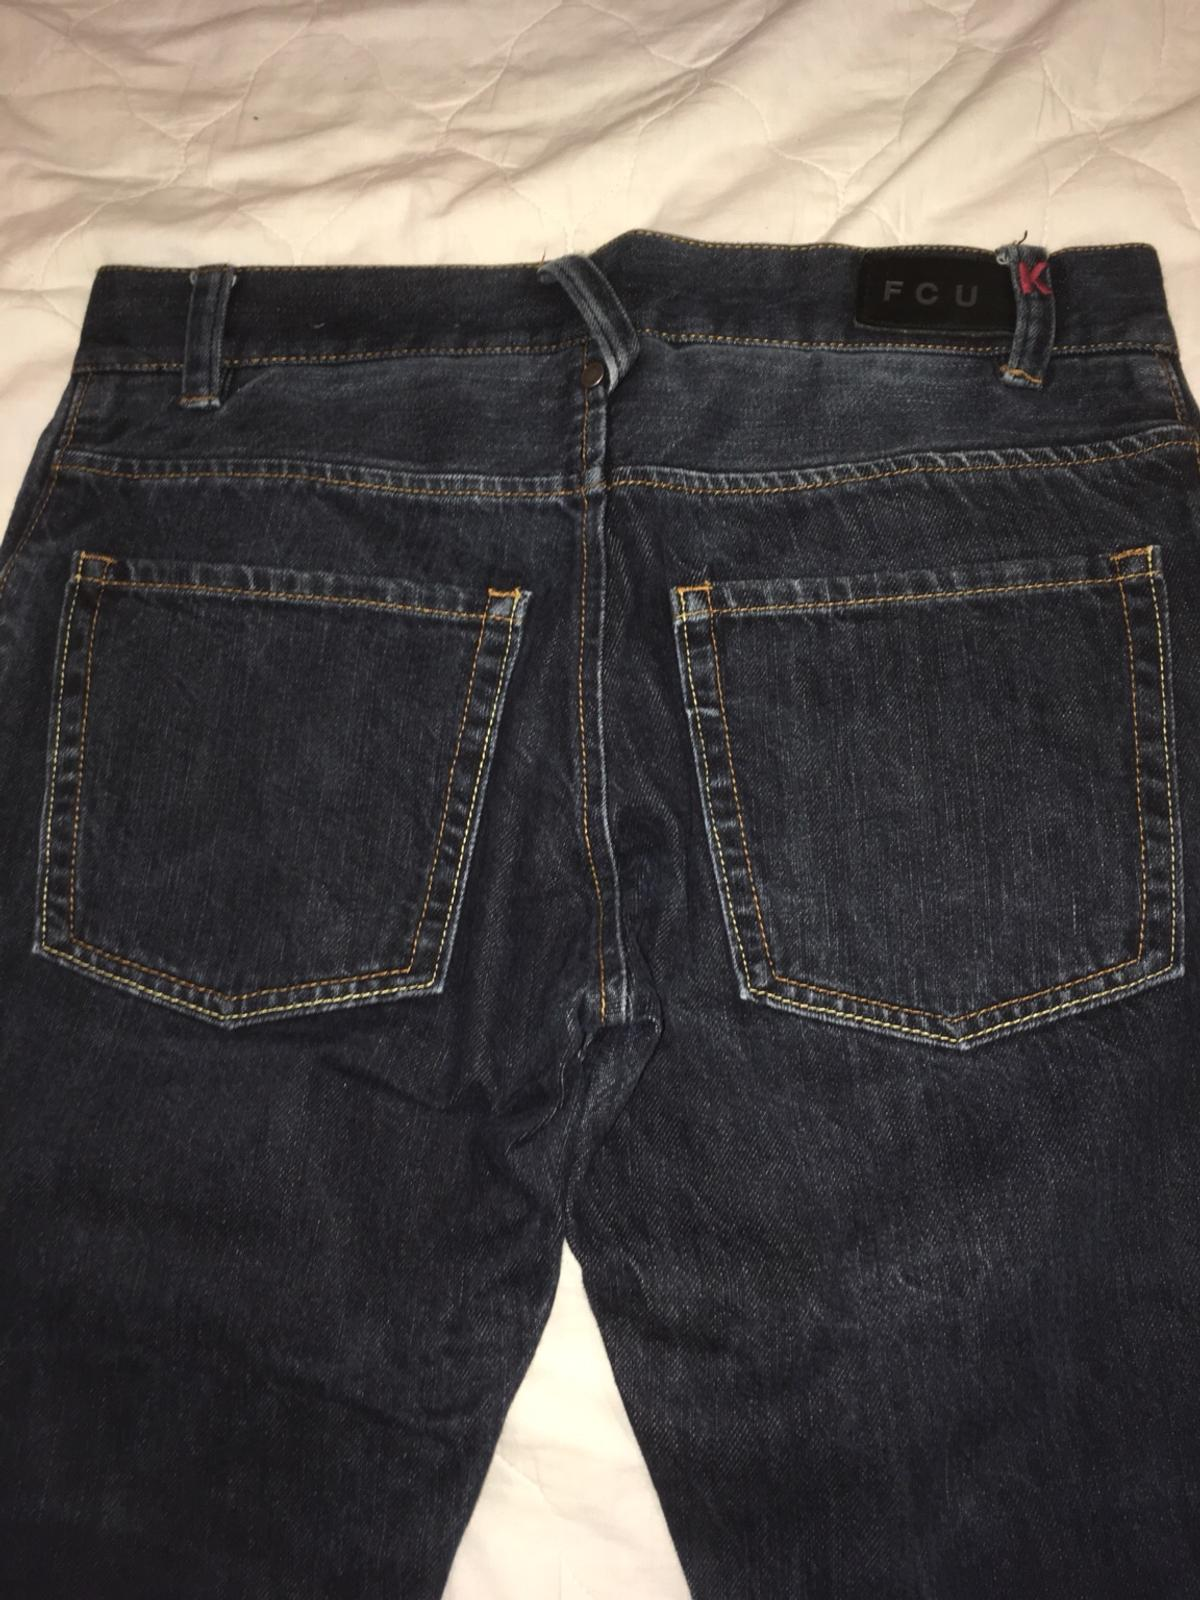 5f1e8ab39ad FCUK Jeans in UB6 Ealing for £25.00 for sale - Shpock